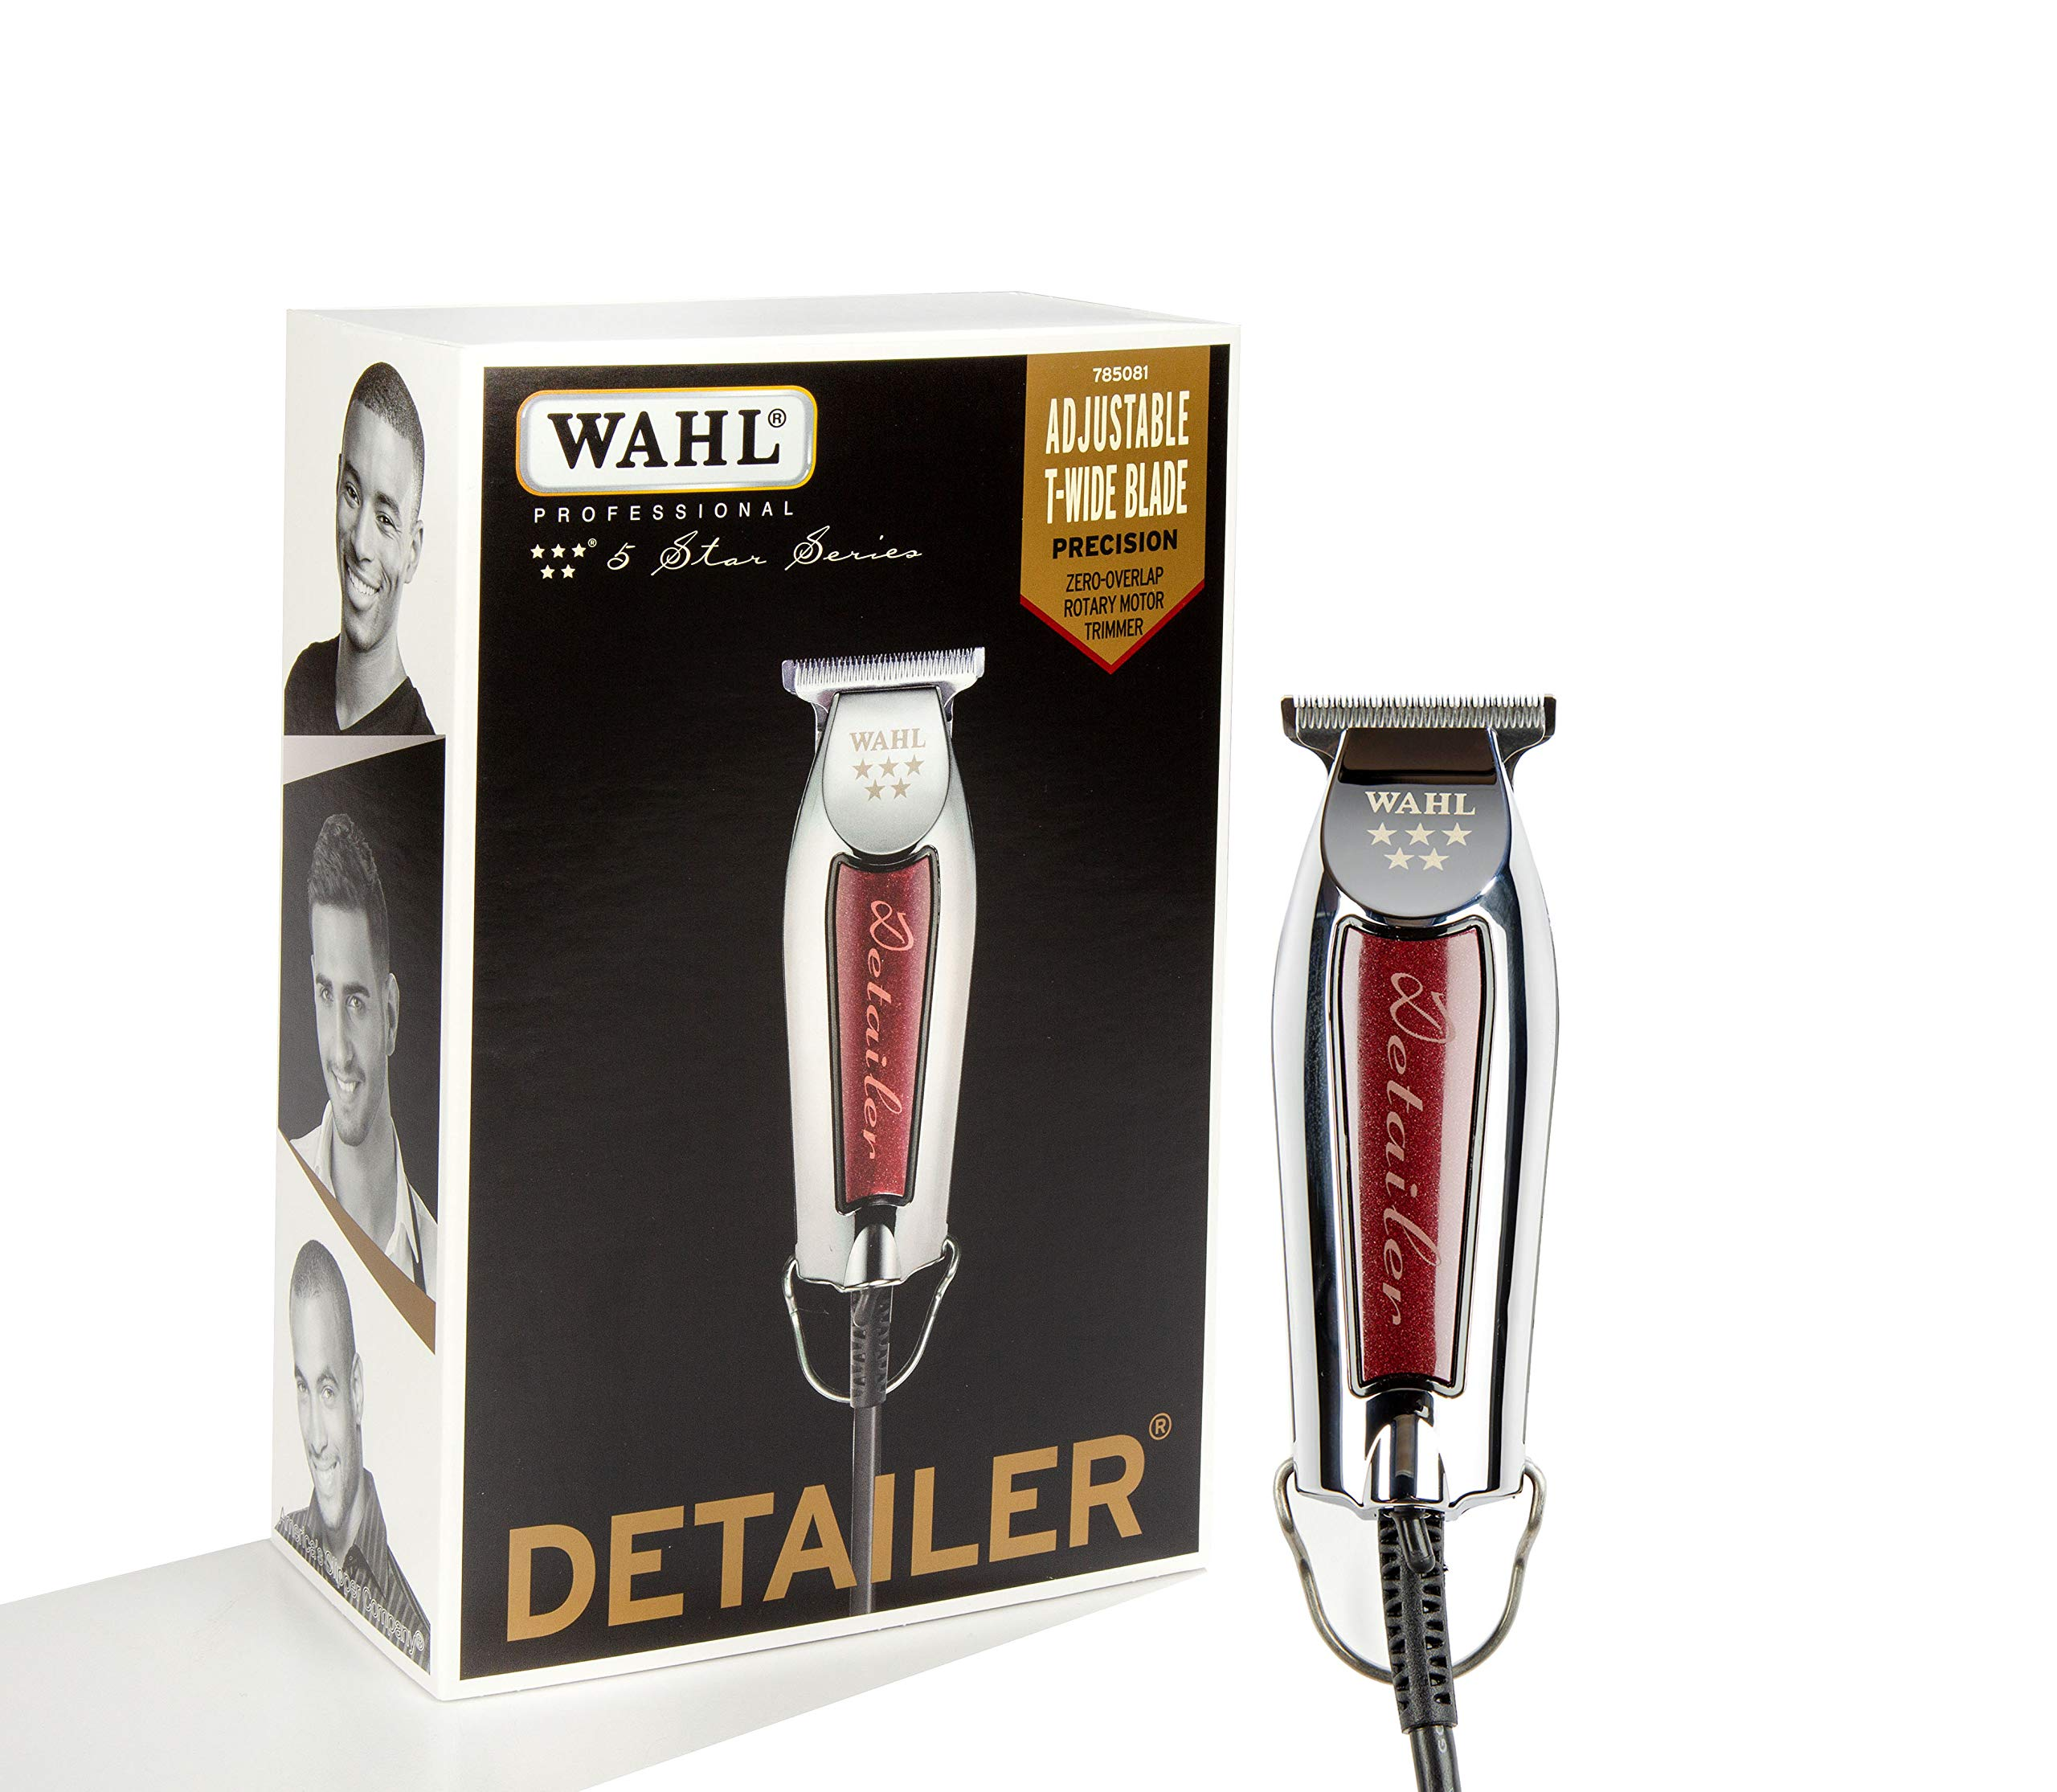 Wahl Professional Series Detailer #8081 - With Adjustable T-Blade, 3 Trimming Guides (1/16 inch - 1/4 inch), Red Blade Guard, Oil, Cleaning Brush and Operating Instructions, 5-Inch - 81HGkJqLNWL - Wahl Professional Series Detailer #8081 – With Adjustable T-Blade, 3 Trimming Guides (1/16″ – 3/16″), Red Blade Guard, Oil, Cleaning Brush and Operating Instructions, 5-Inch